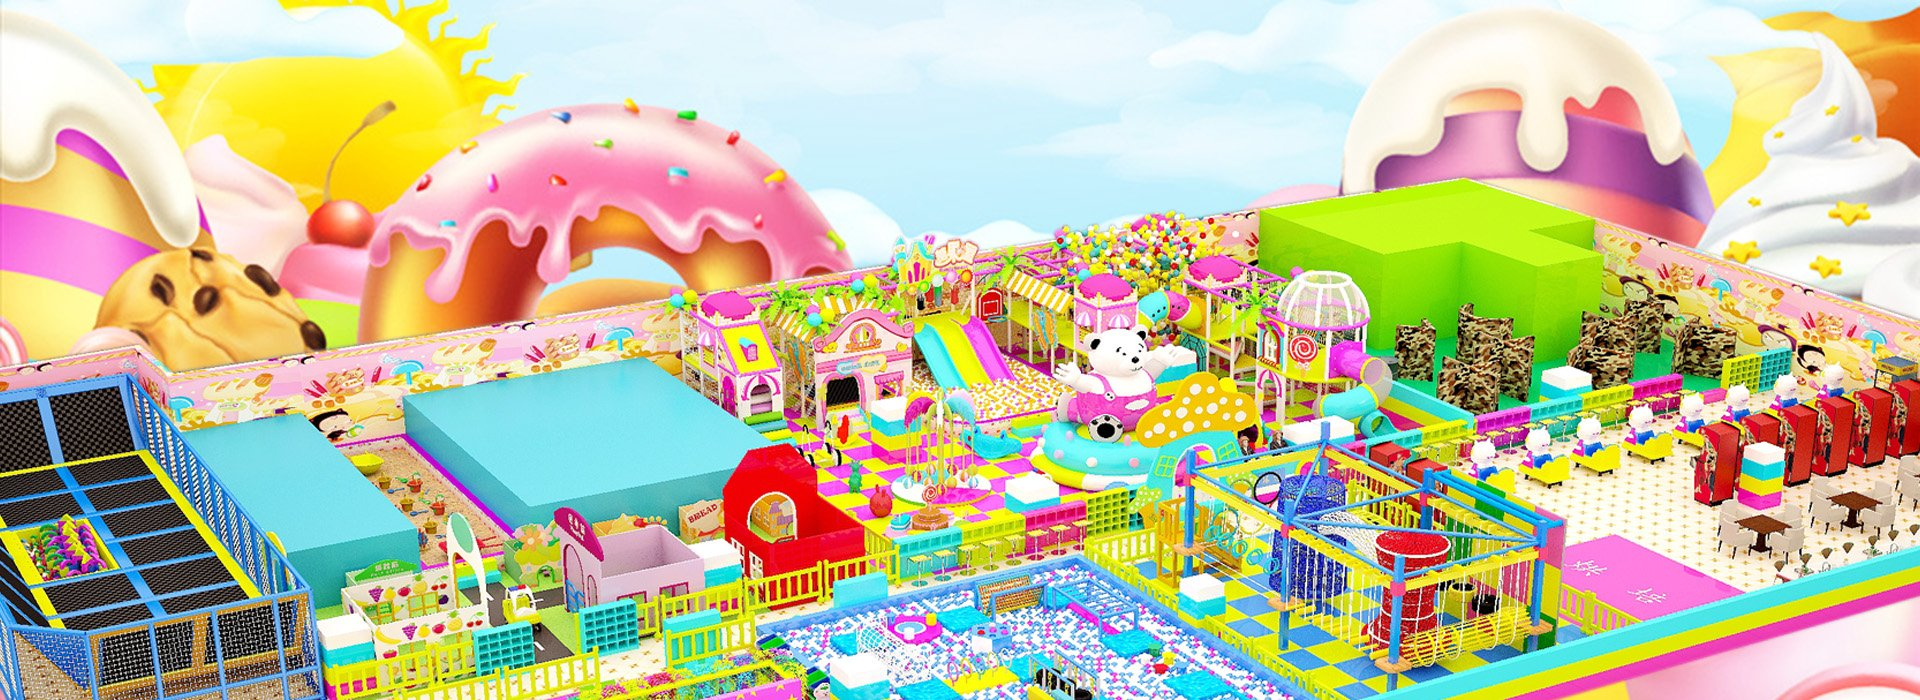 Candy Themed Soft Indoor Playground